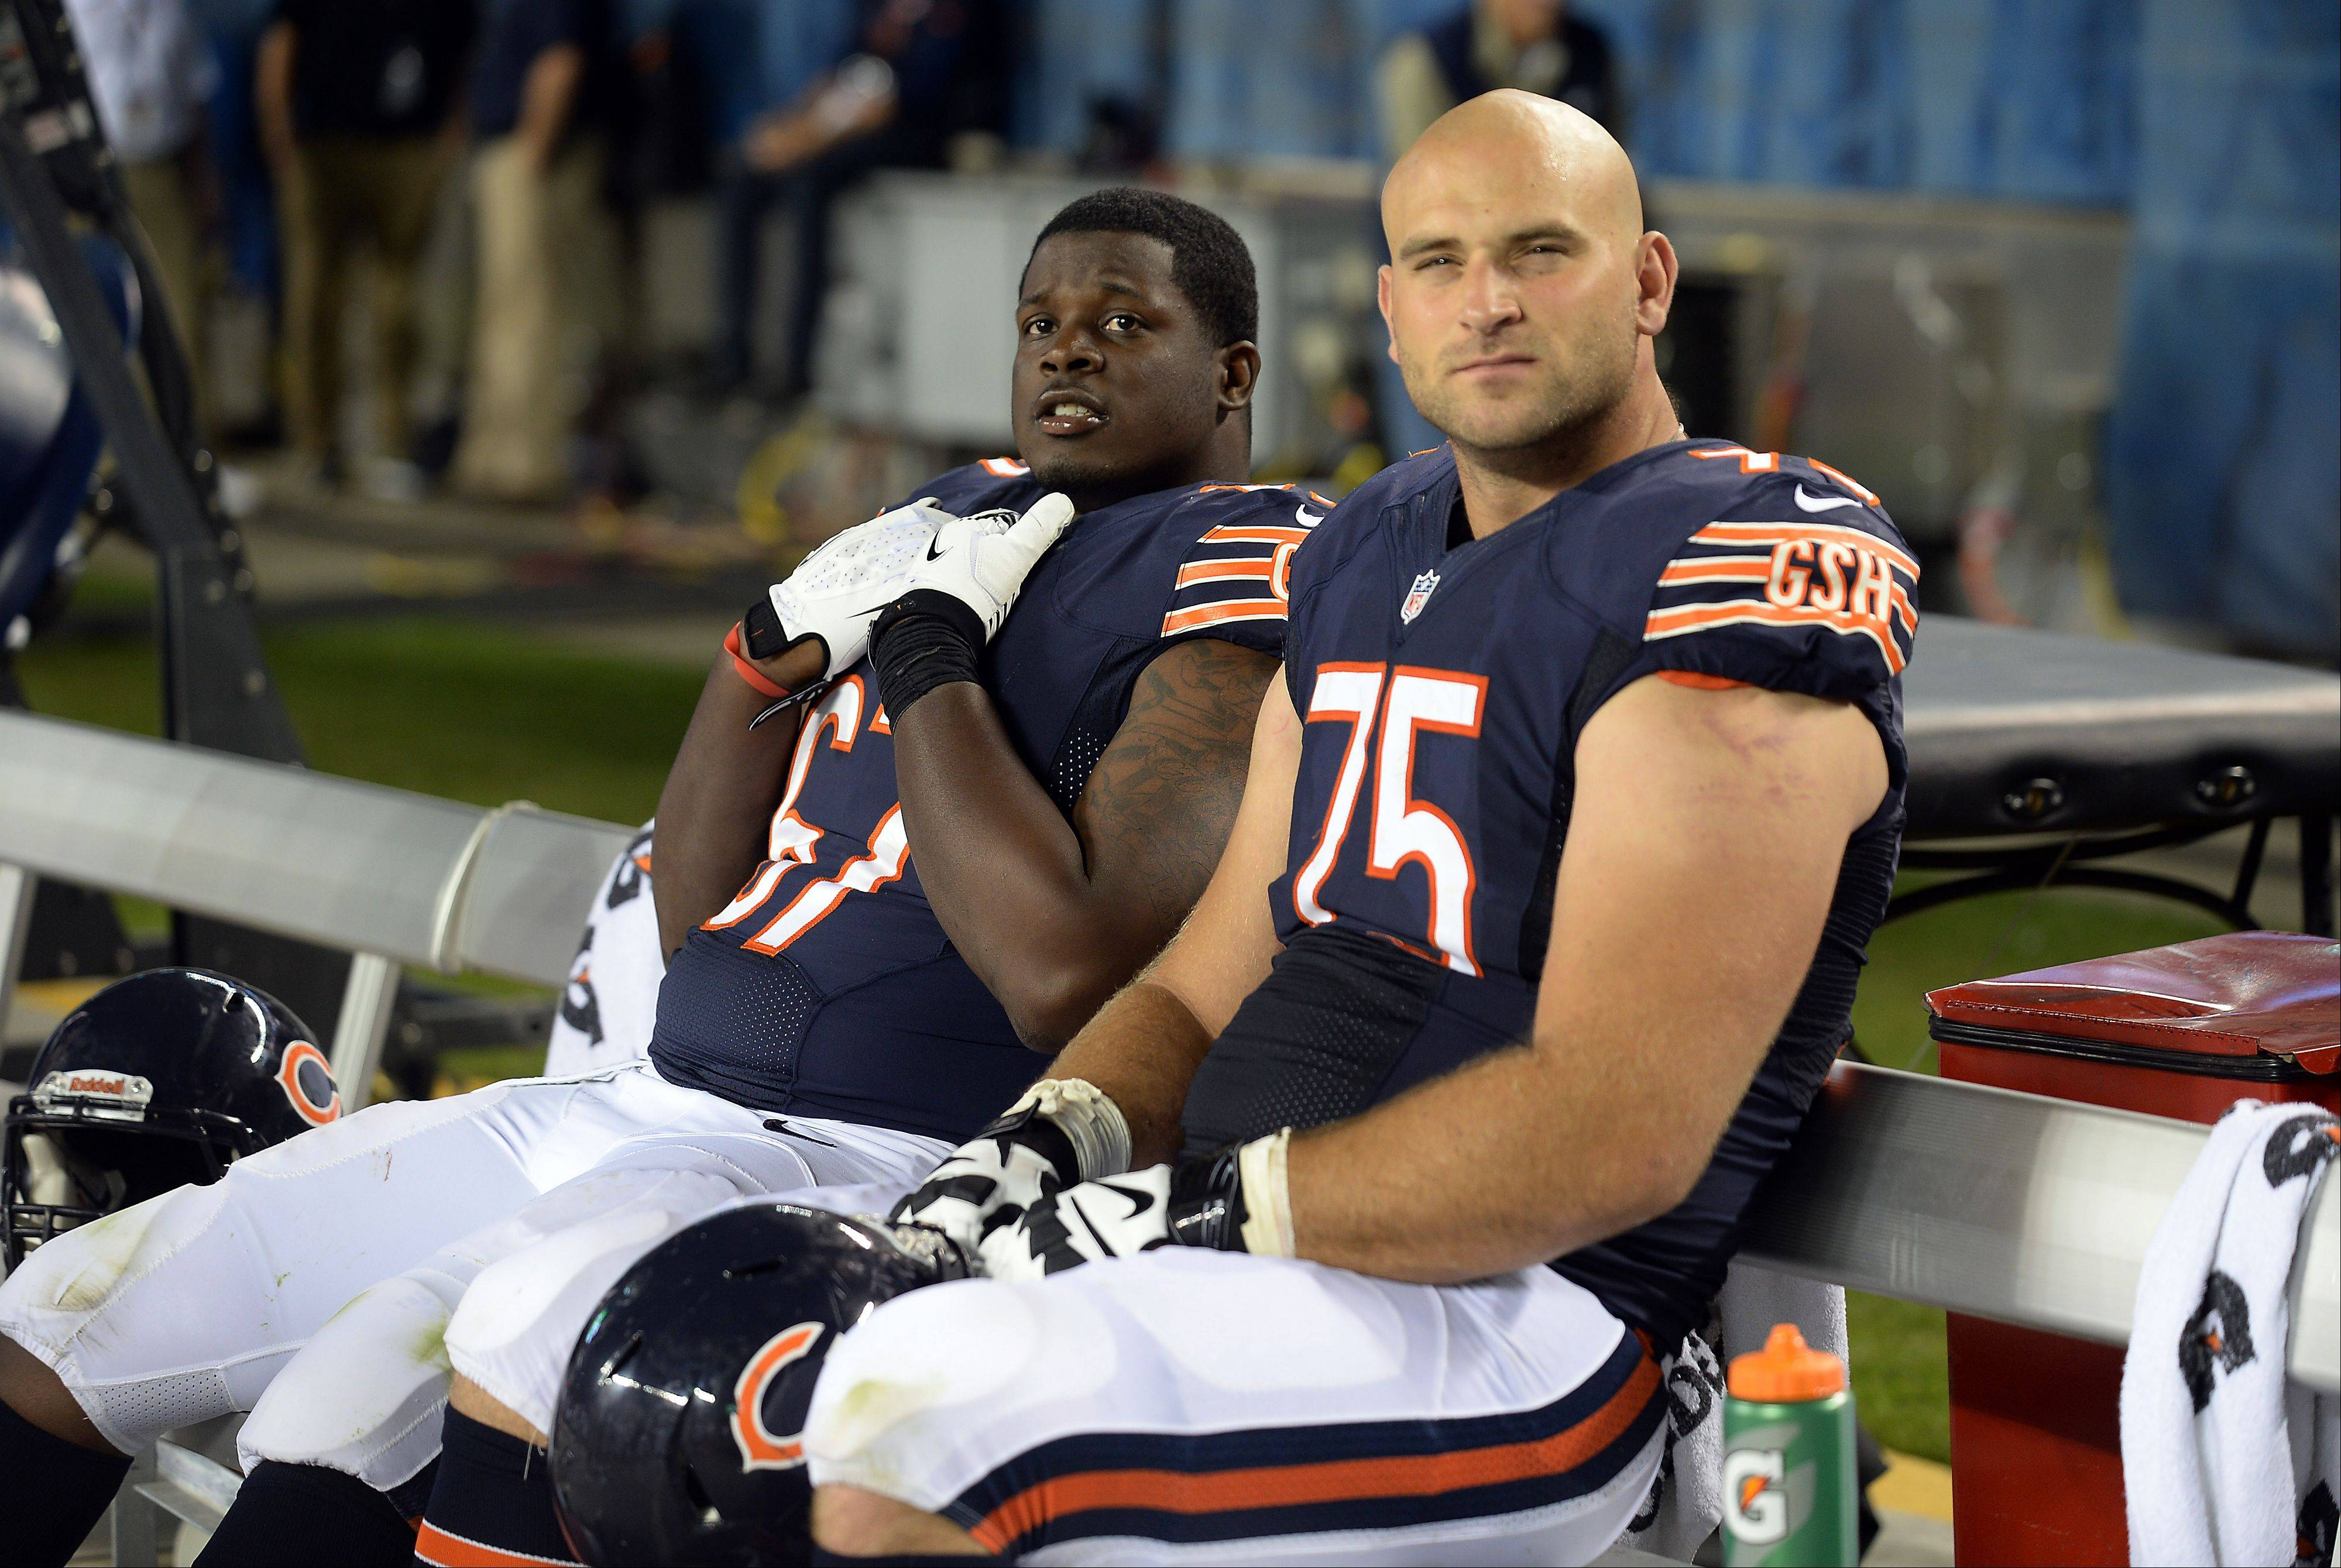 Mark Welsh/mwelsh@dailyherald.com ¬ Bears Kyle Long and Jordan Mills take a rest break in the 4th quarter in the preseason matchup against the Chargers at Soldier Field. ¬ ¬